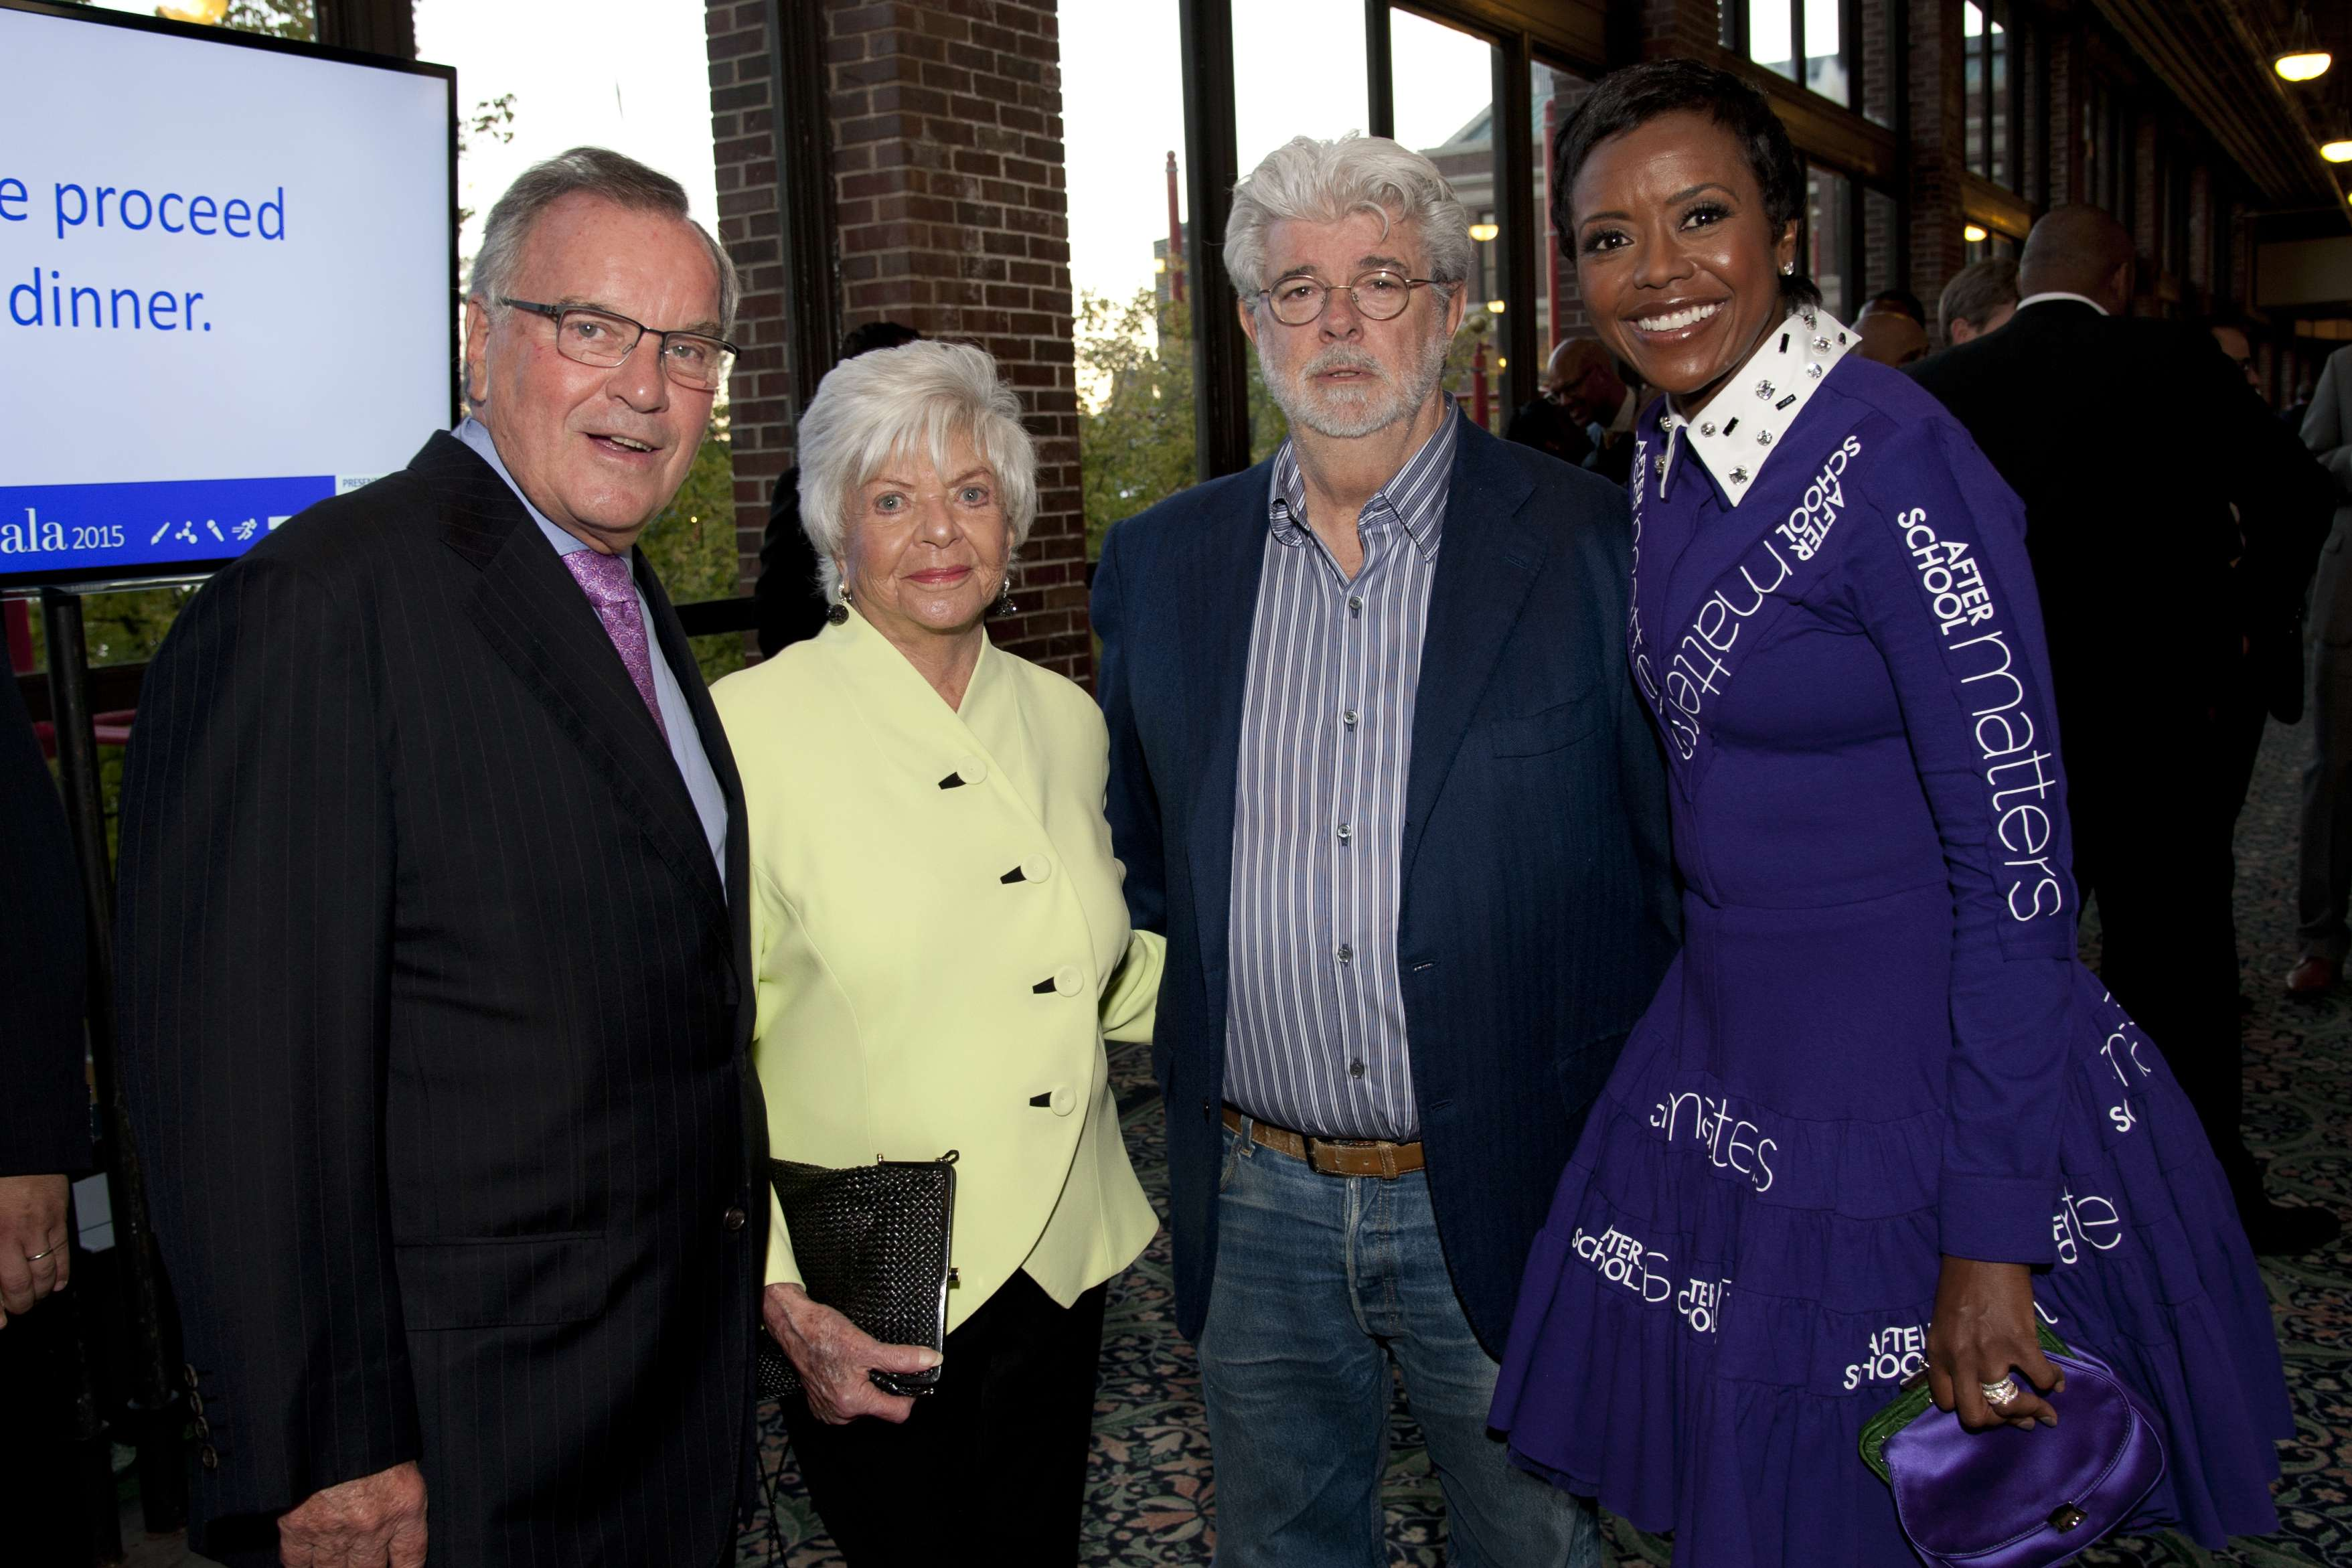 <p>Former Chicago Mayor and Honorary Gala Chair Richard M. Daley with supporter Cindy Pritzker pose alongside George Lucas and After School Matters Board Chair Mellody Hobson during the After School Matters Annual Gala at Chicago's historic Navy Pier on September 21, 2015. Photo credit: Robert Carl</p>